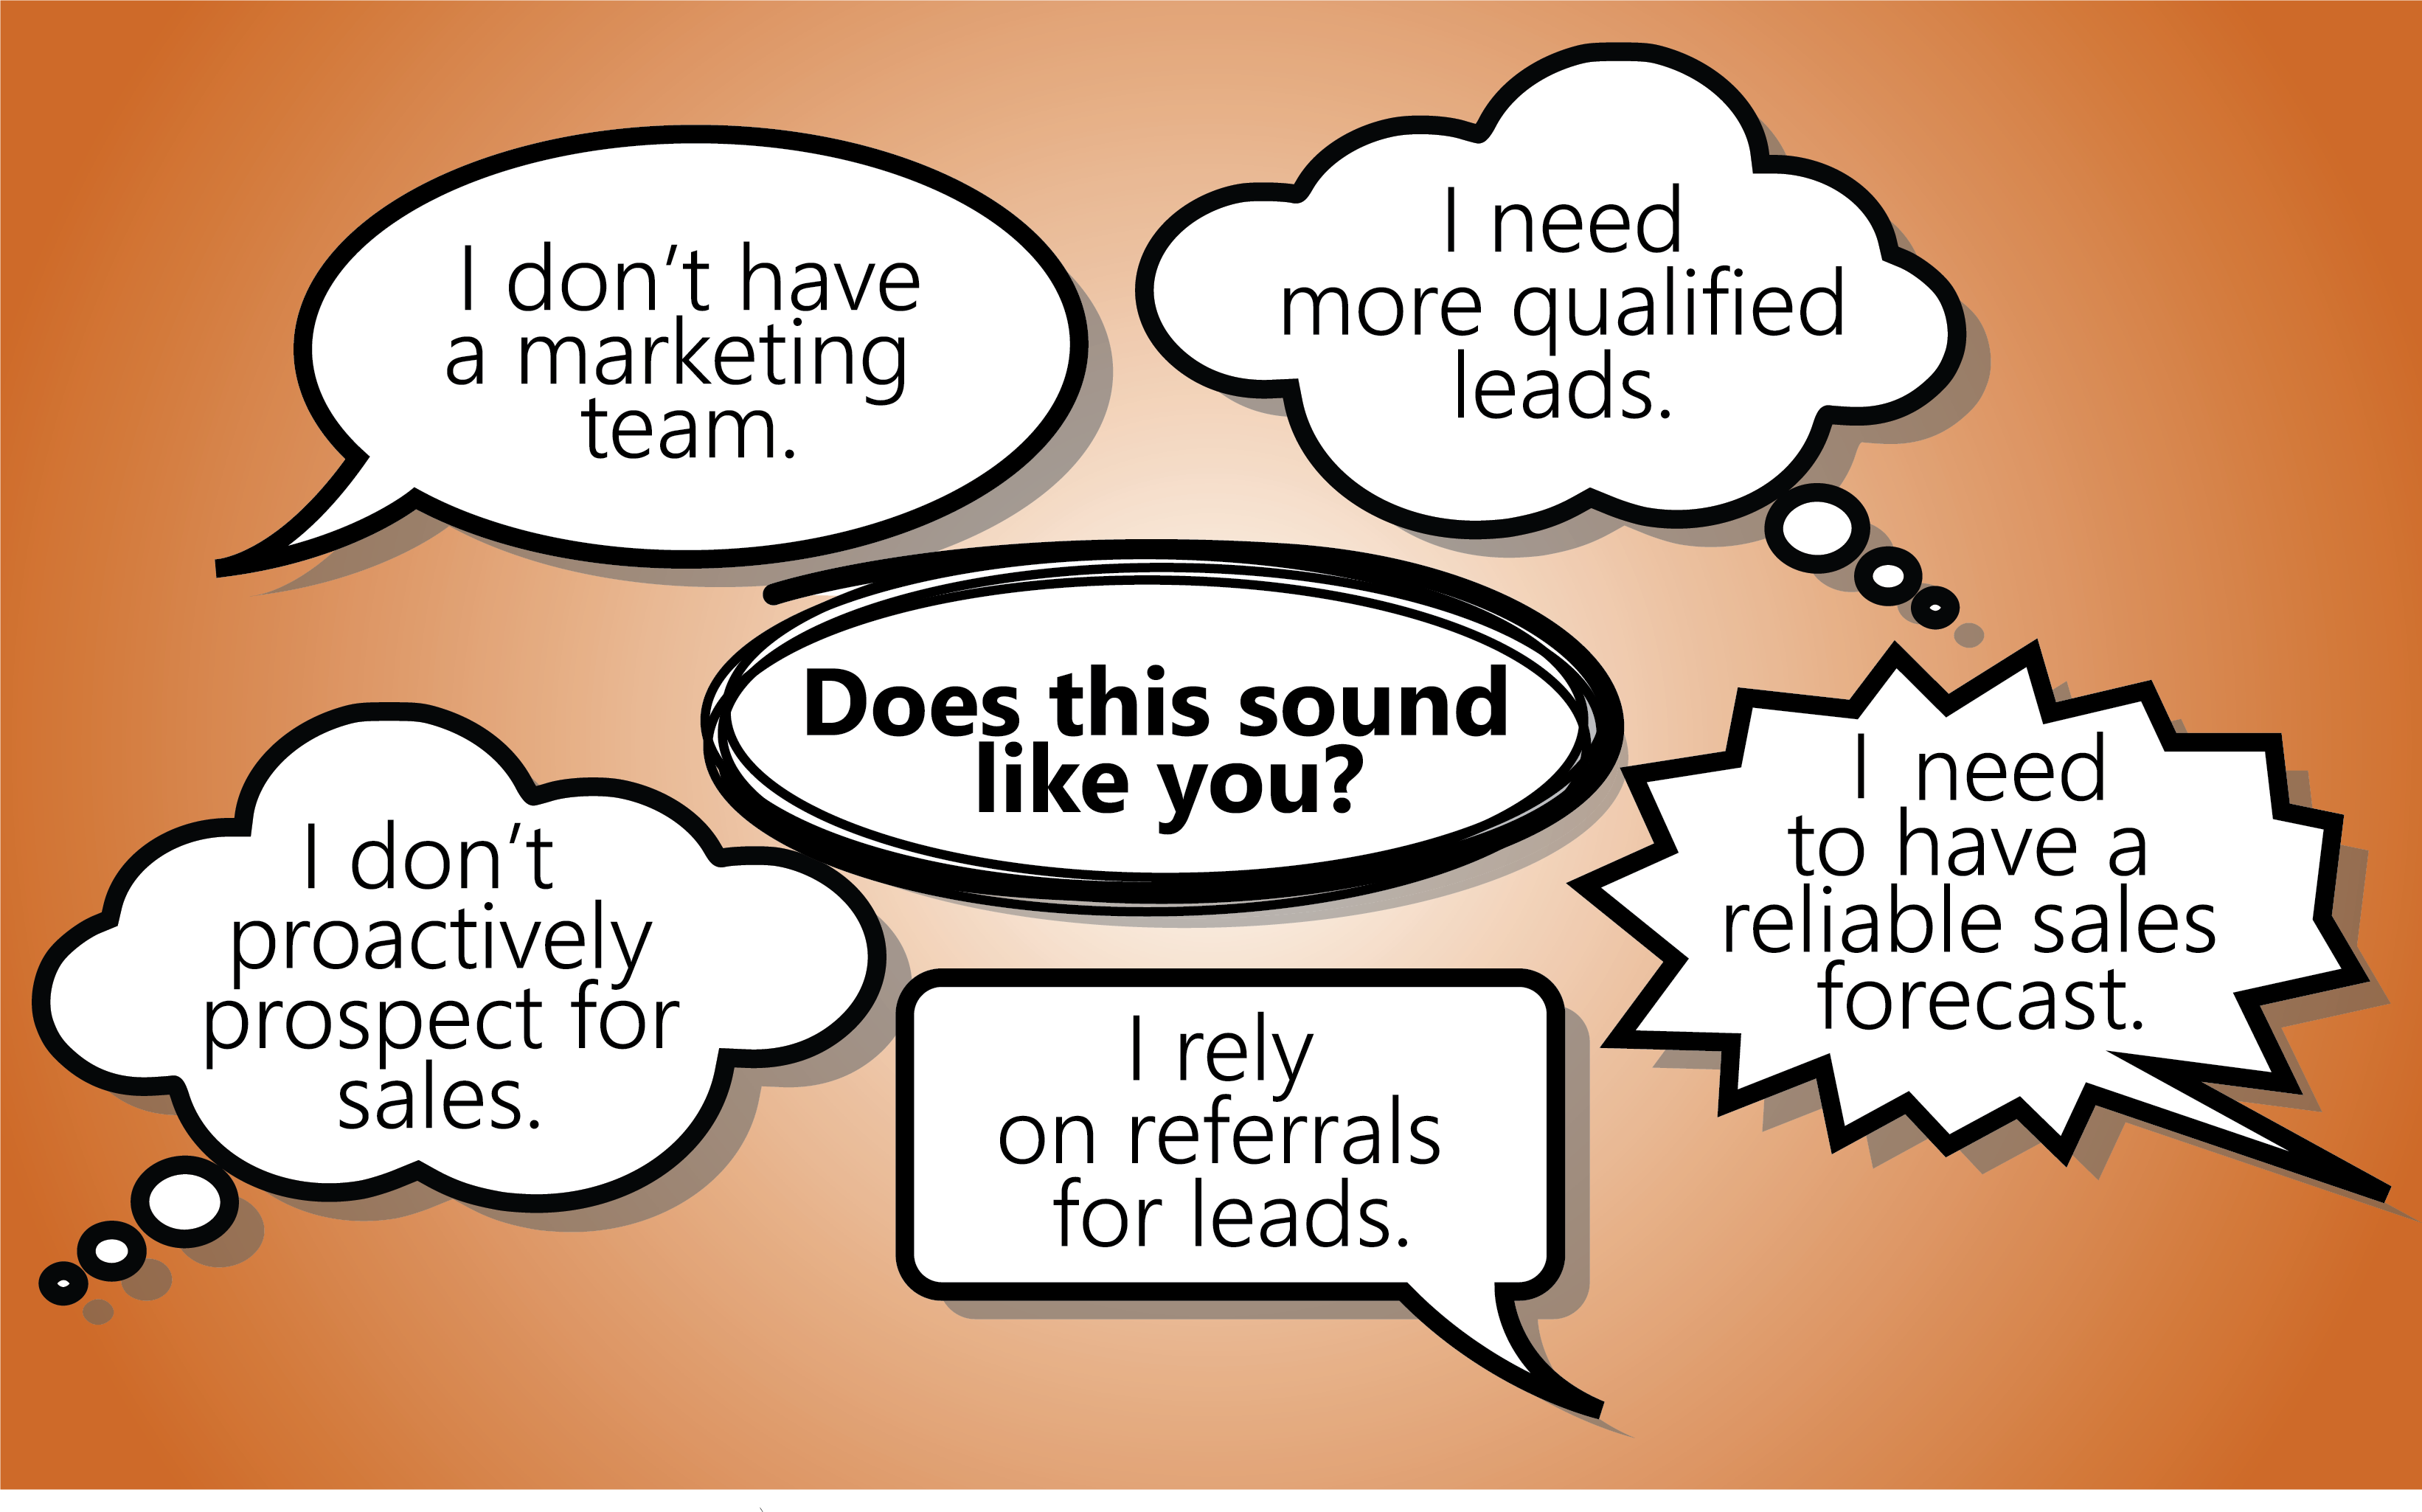 Does this sound like you? SMB Speech Bubble Graphic